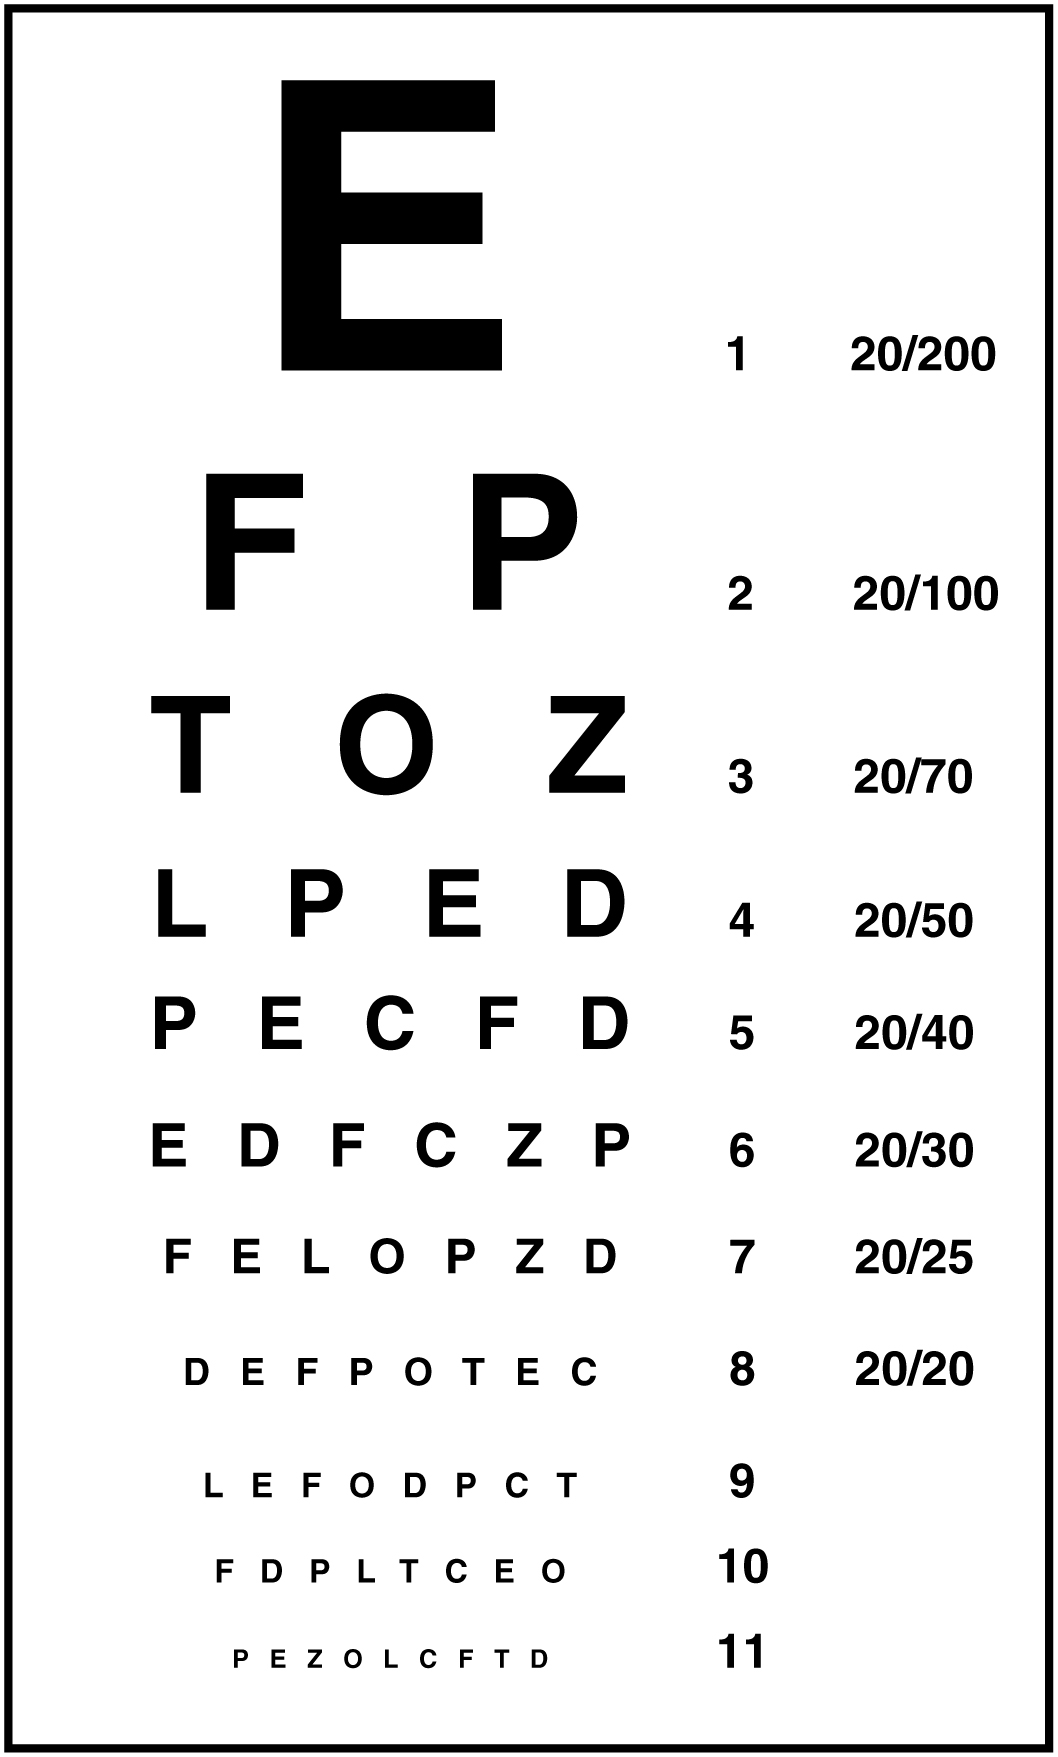 This figure shows a chart that is used for eye exams.